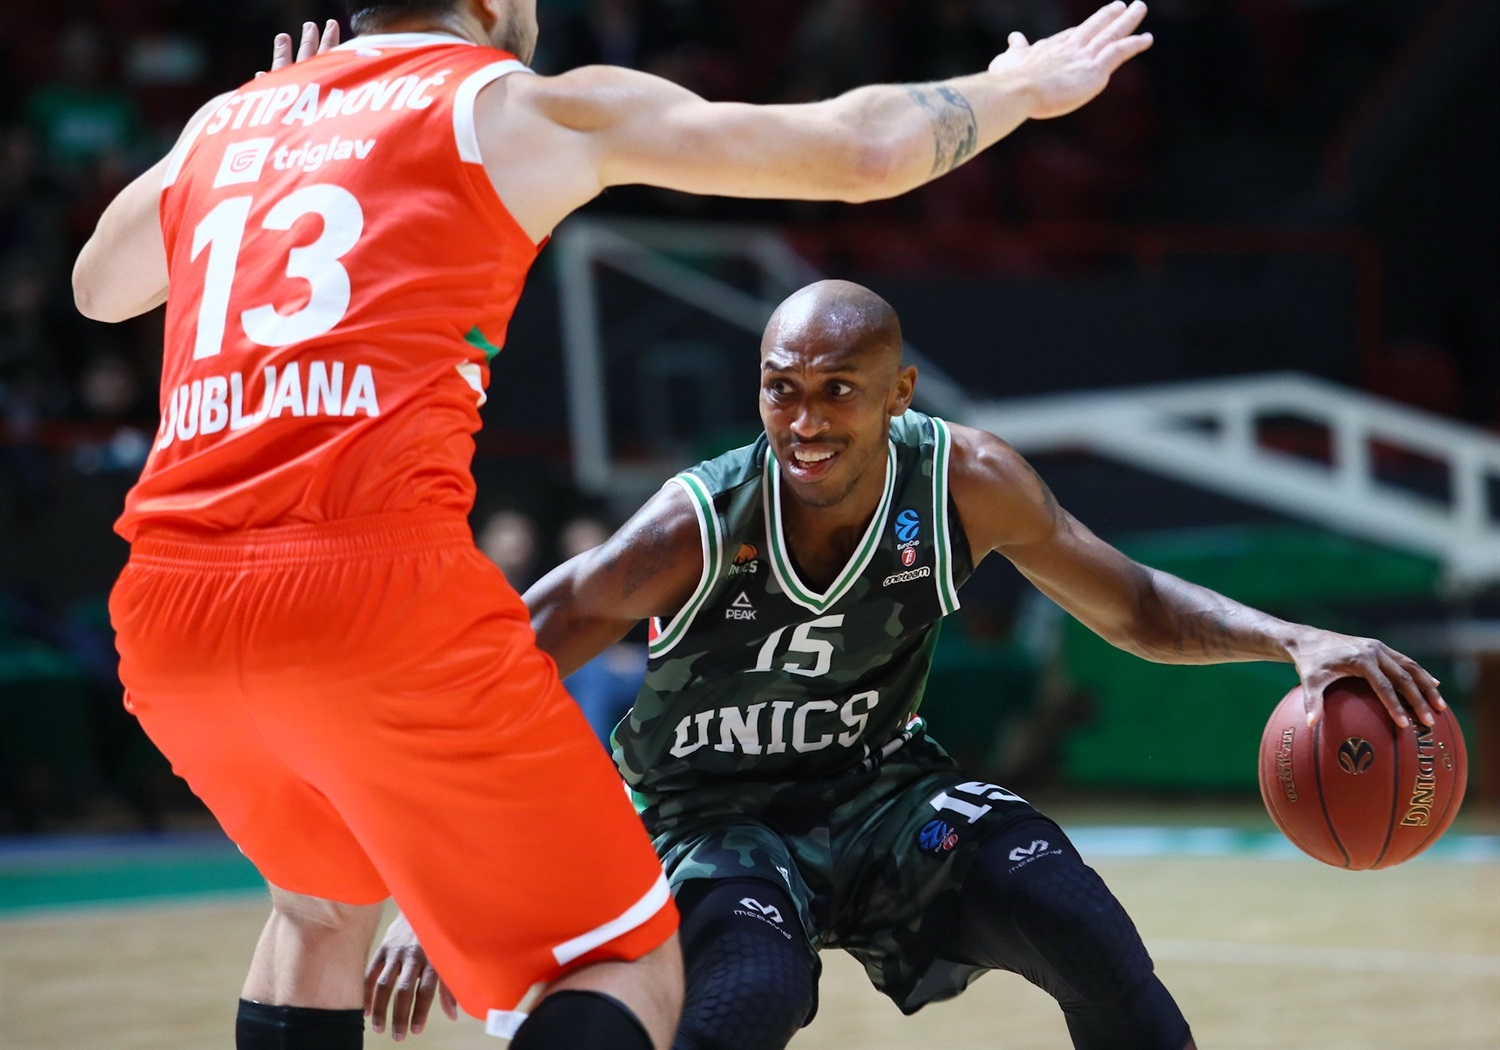 Jamar Smith - UNICS Kazan (photo UNICS) - EC19